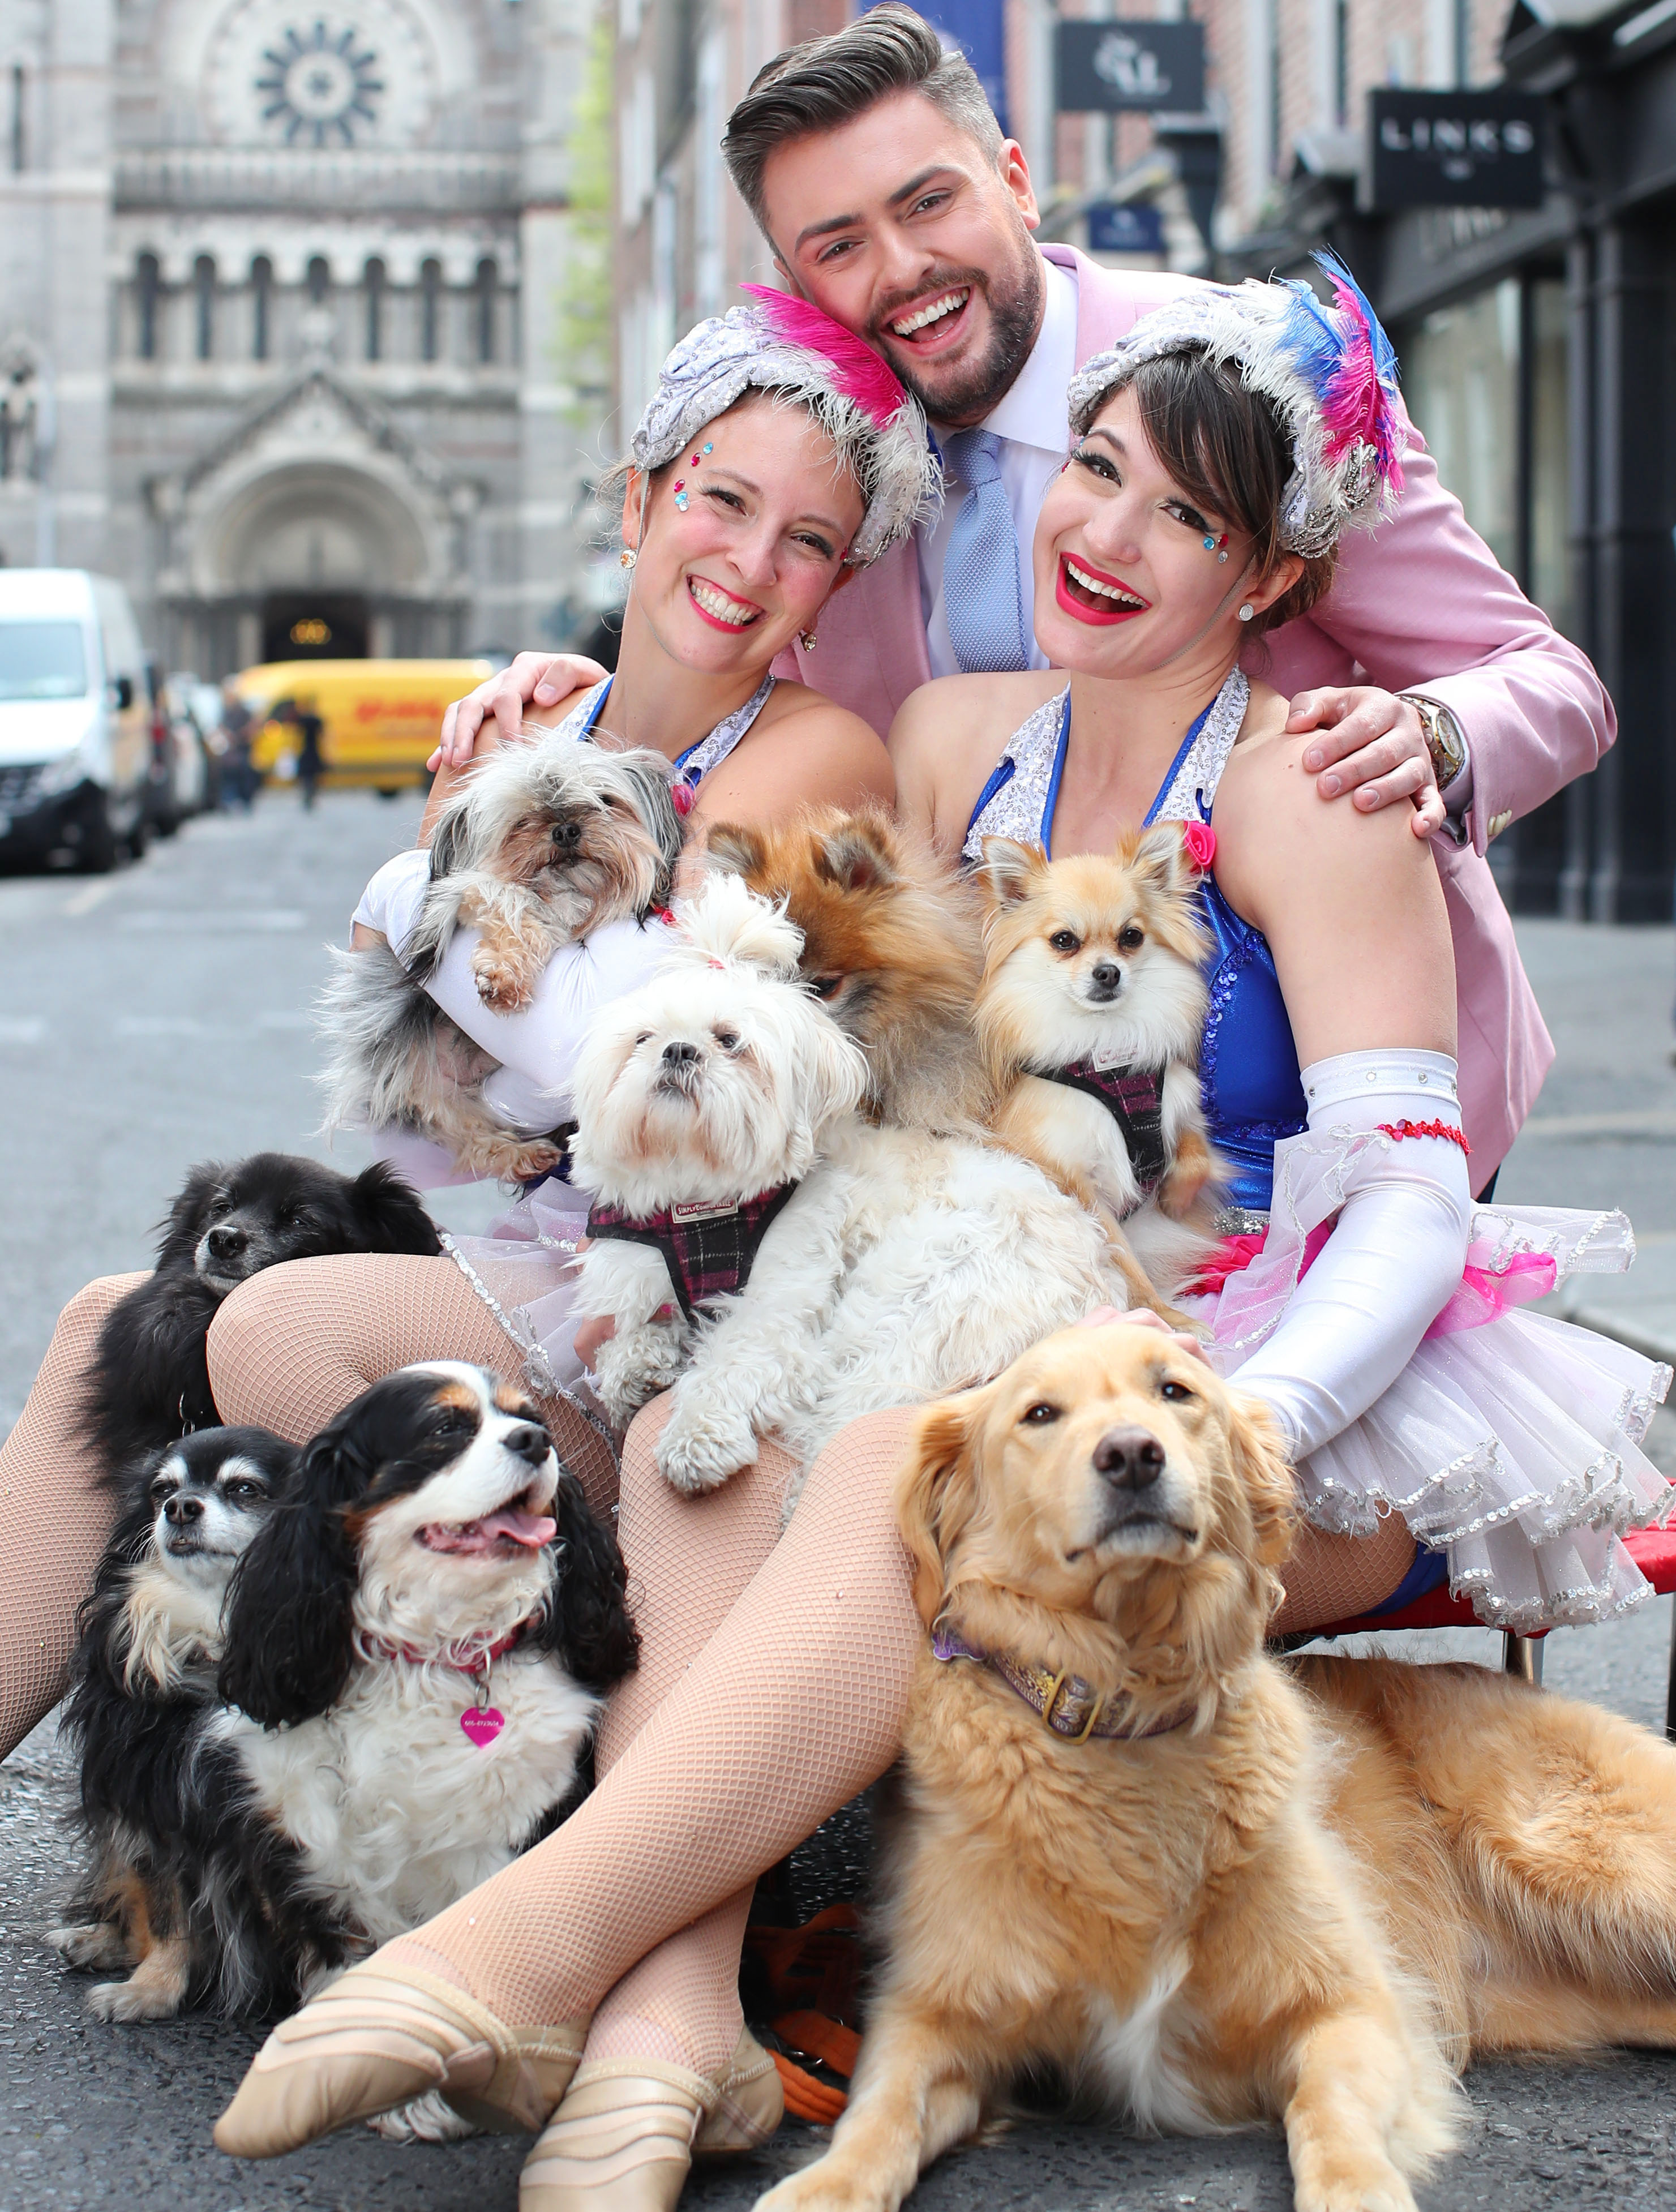 Social media superstar James Patrice with The Silver Starlets & official festival charity partner DSCPA and Purina's furry friends who will be joined by Cork's CSPCA bringing doggy delights such as the Scruffs dog show and dog agility to the festival